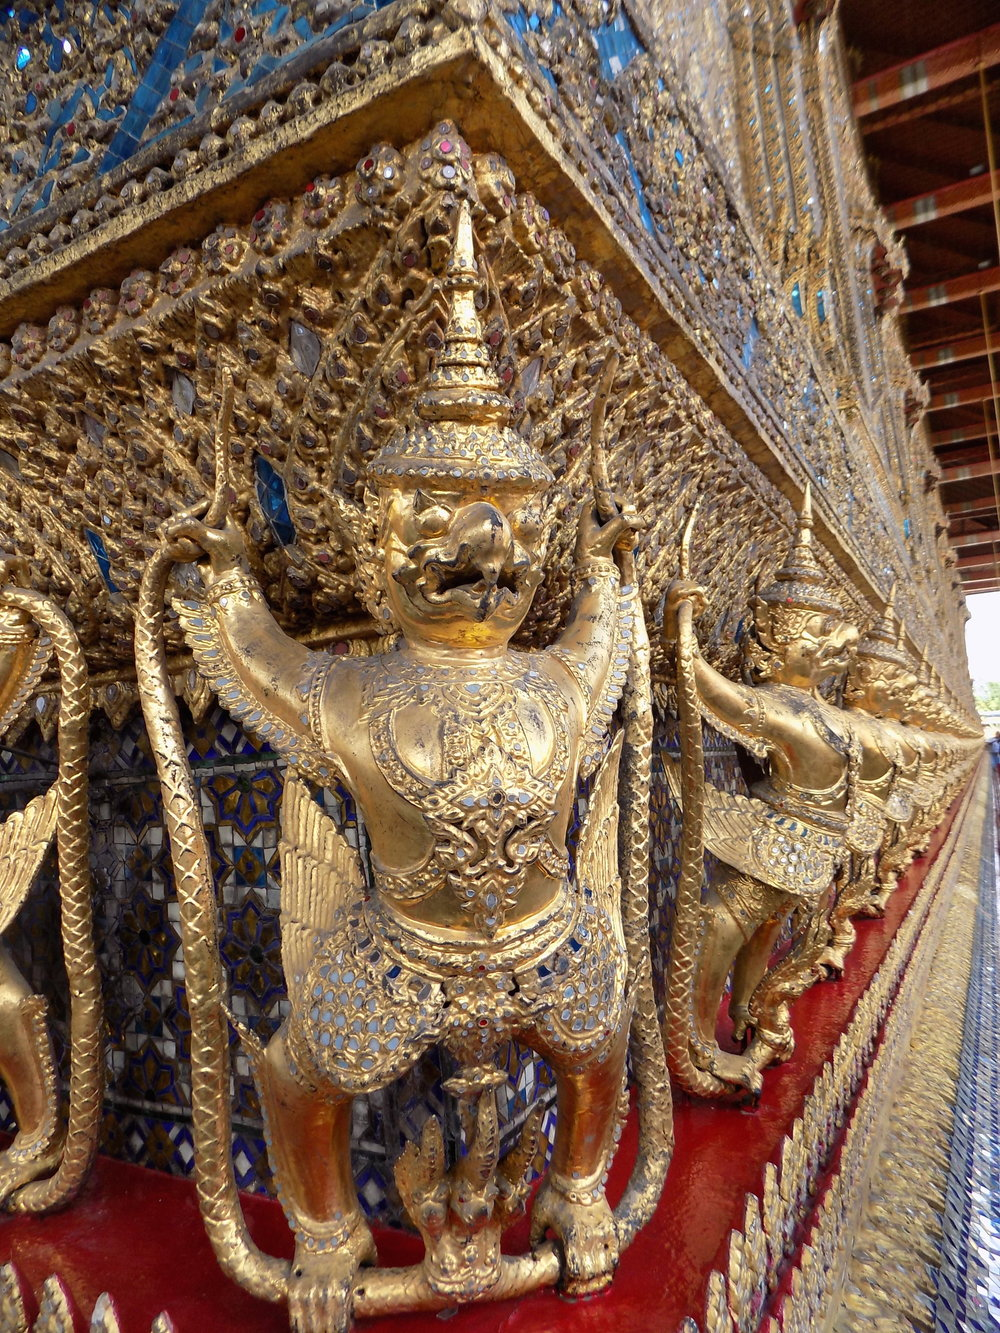 Bangkok's Grand Palace - outside The Emerald Buddah